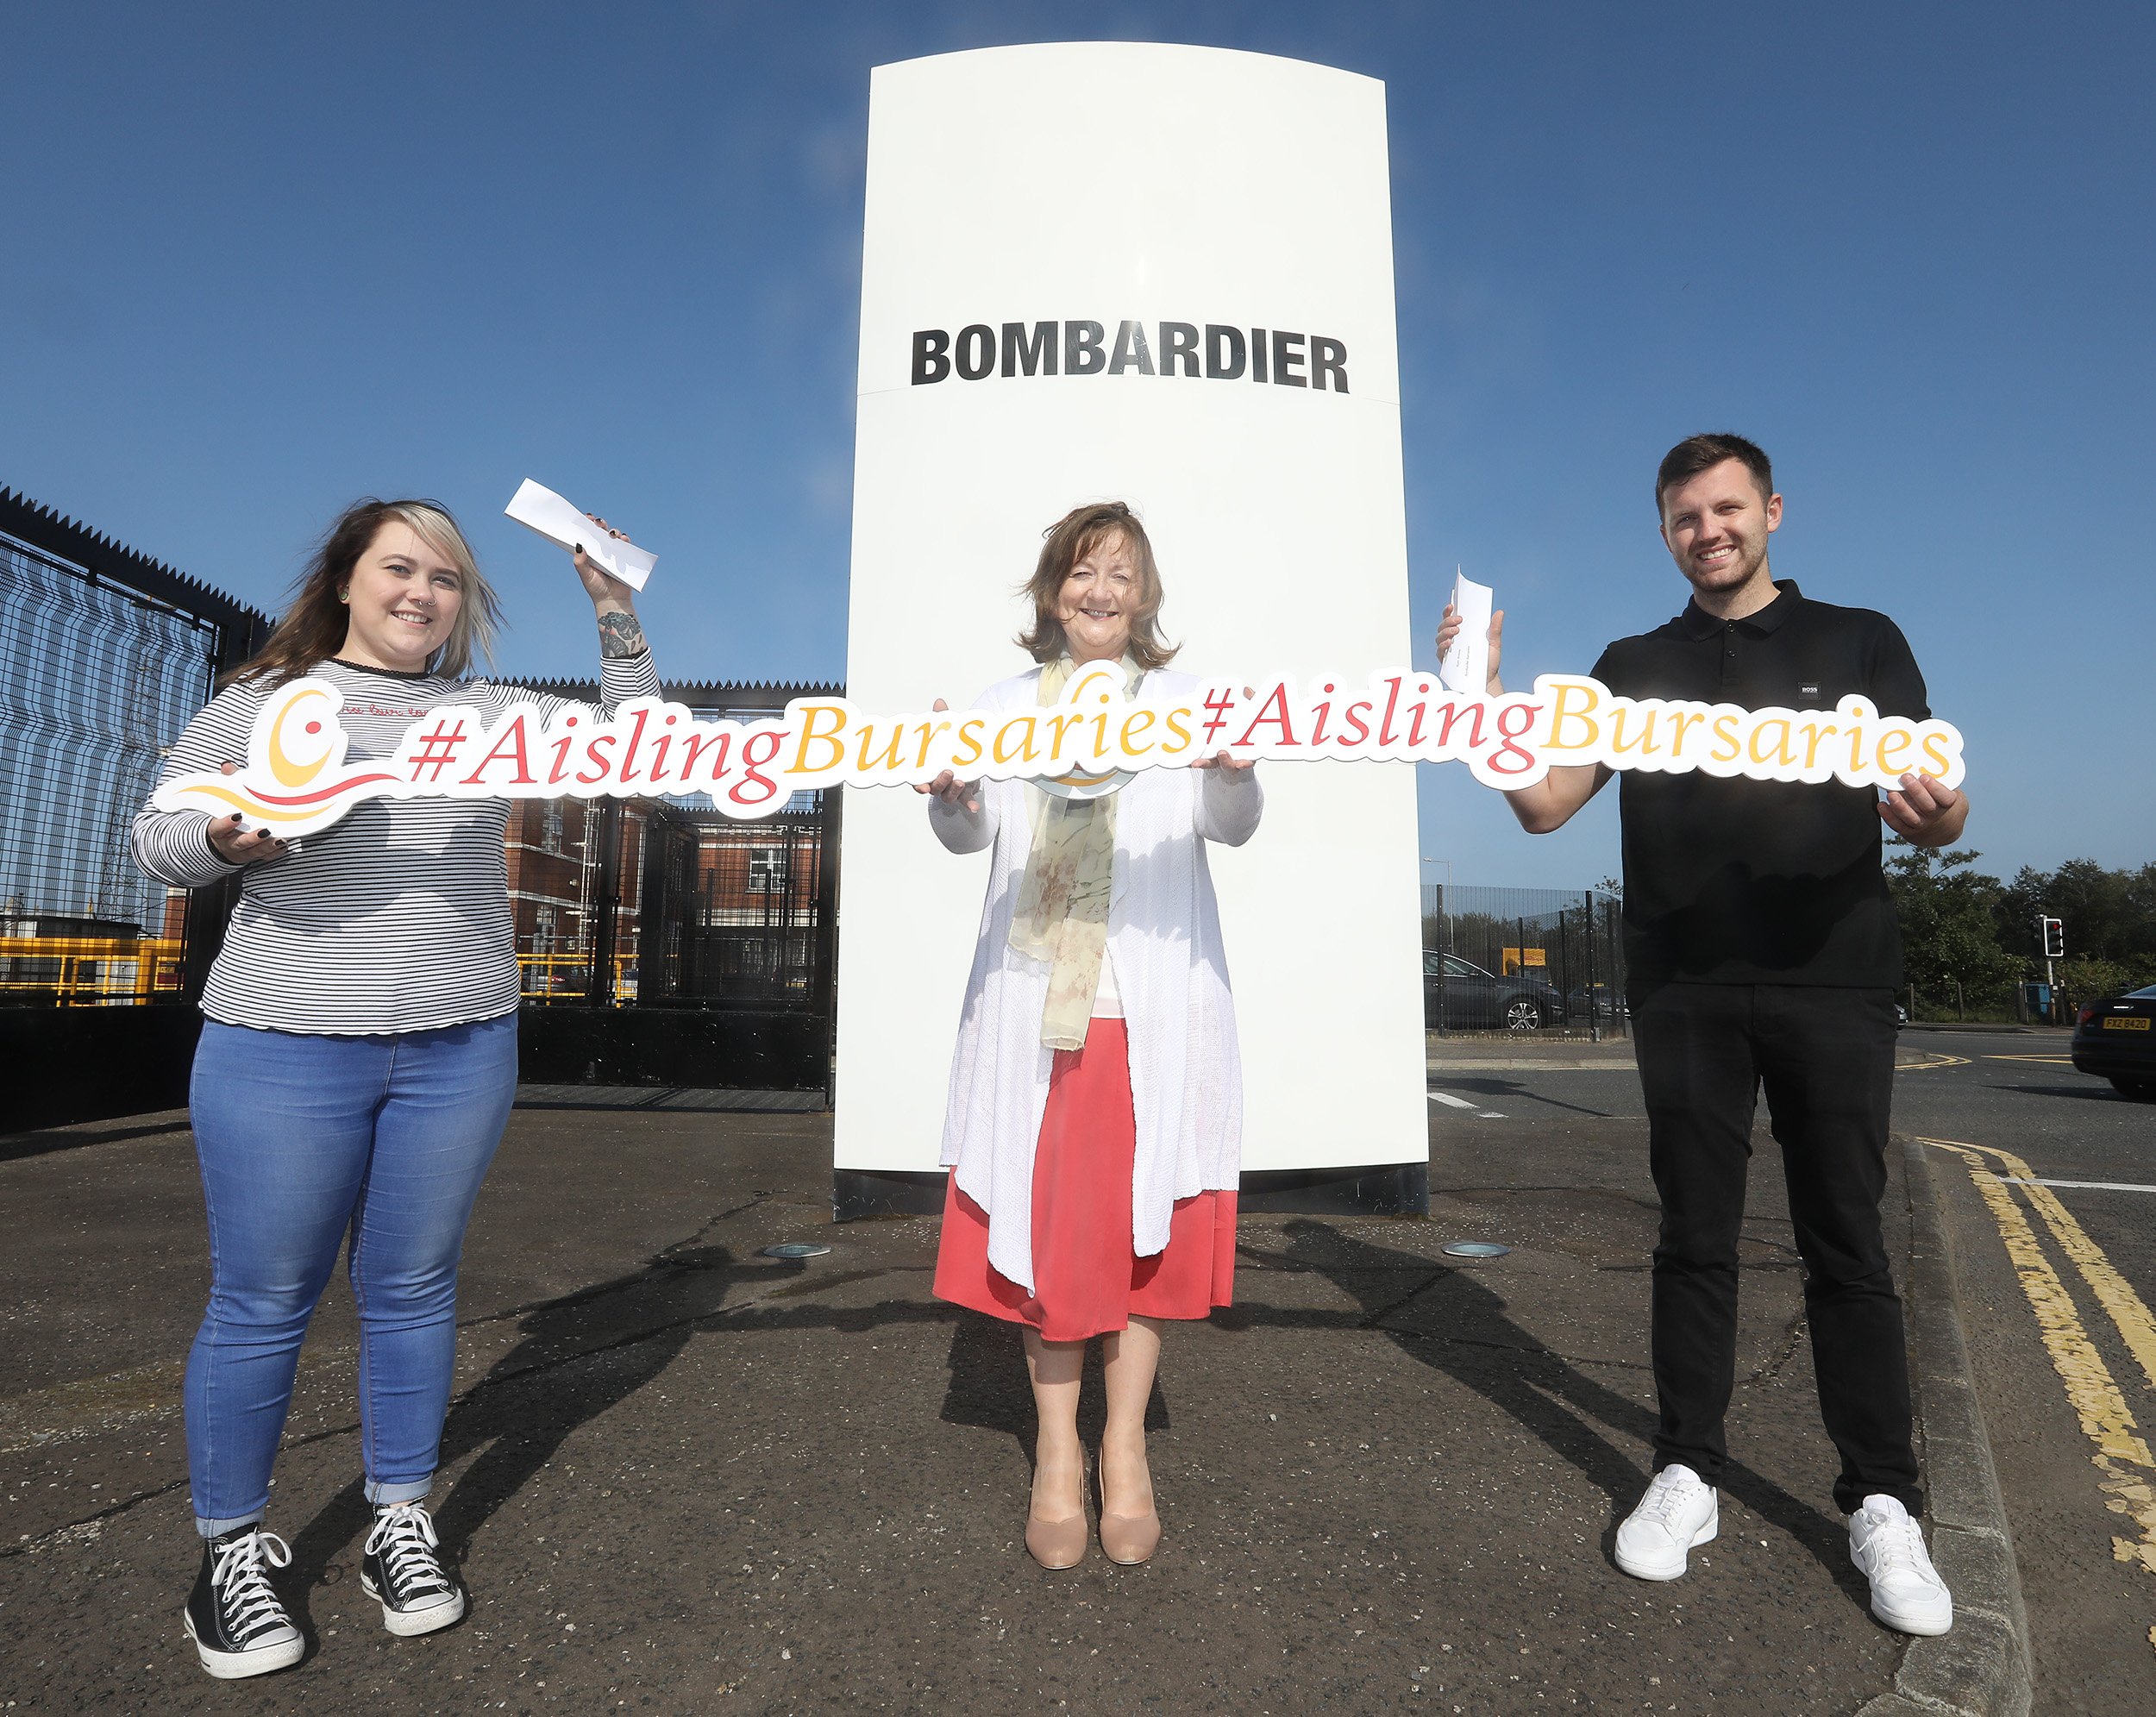 Carol Phillips, VP, Human Resources, Bombardier Aerostructures and Engineering Services presenting the Bursaries to Antonia O'Neill, who is studying BSc (hons) in Social Work at Belfast Metropolitan College in association with Ulster University and to Ryan Straney, who is studying MEng in Civil Engineering at Queen's University.